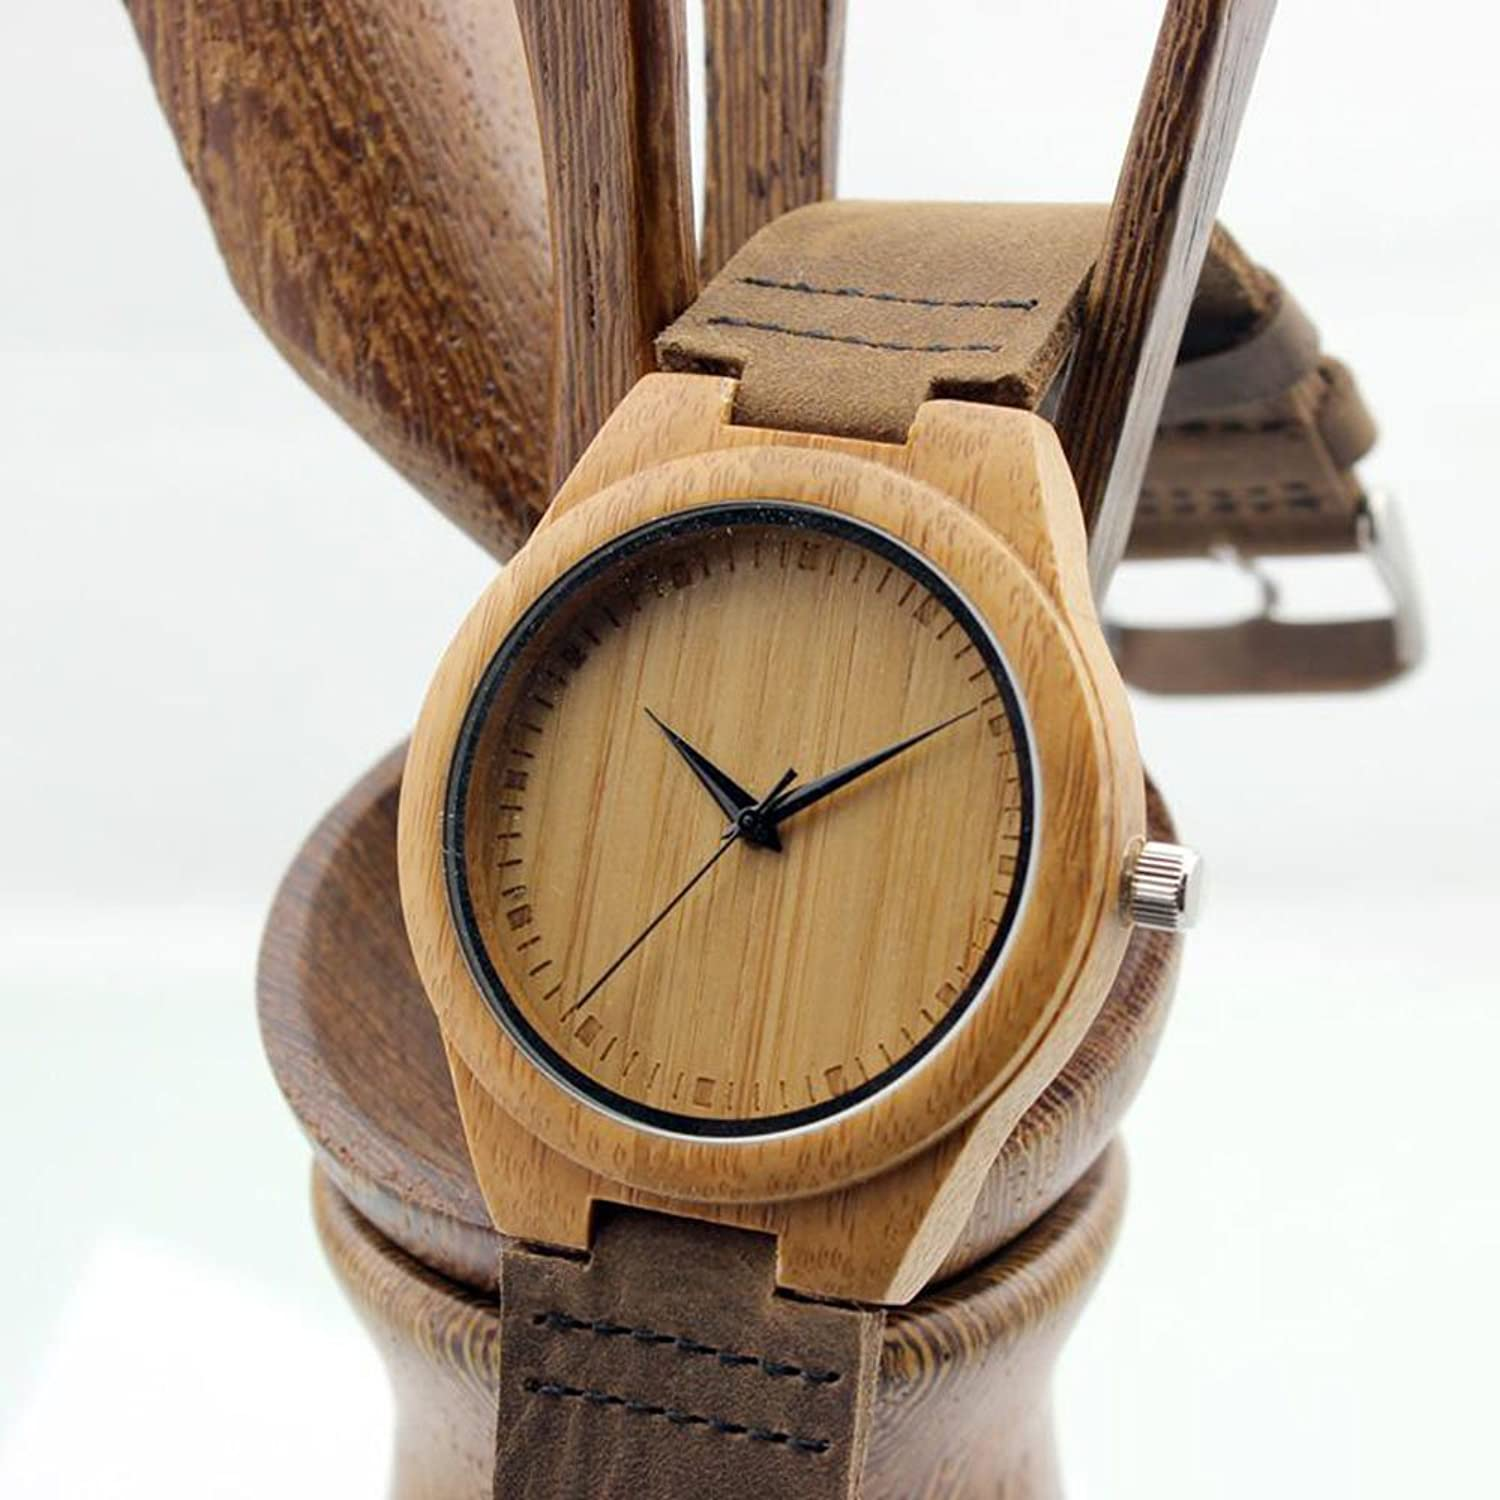 apple party could true own wood developers series allow make soon to faces third watches their face watch